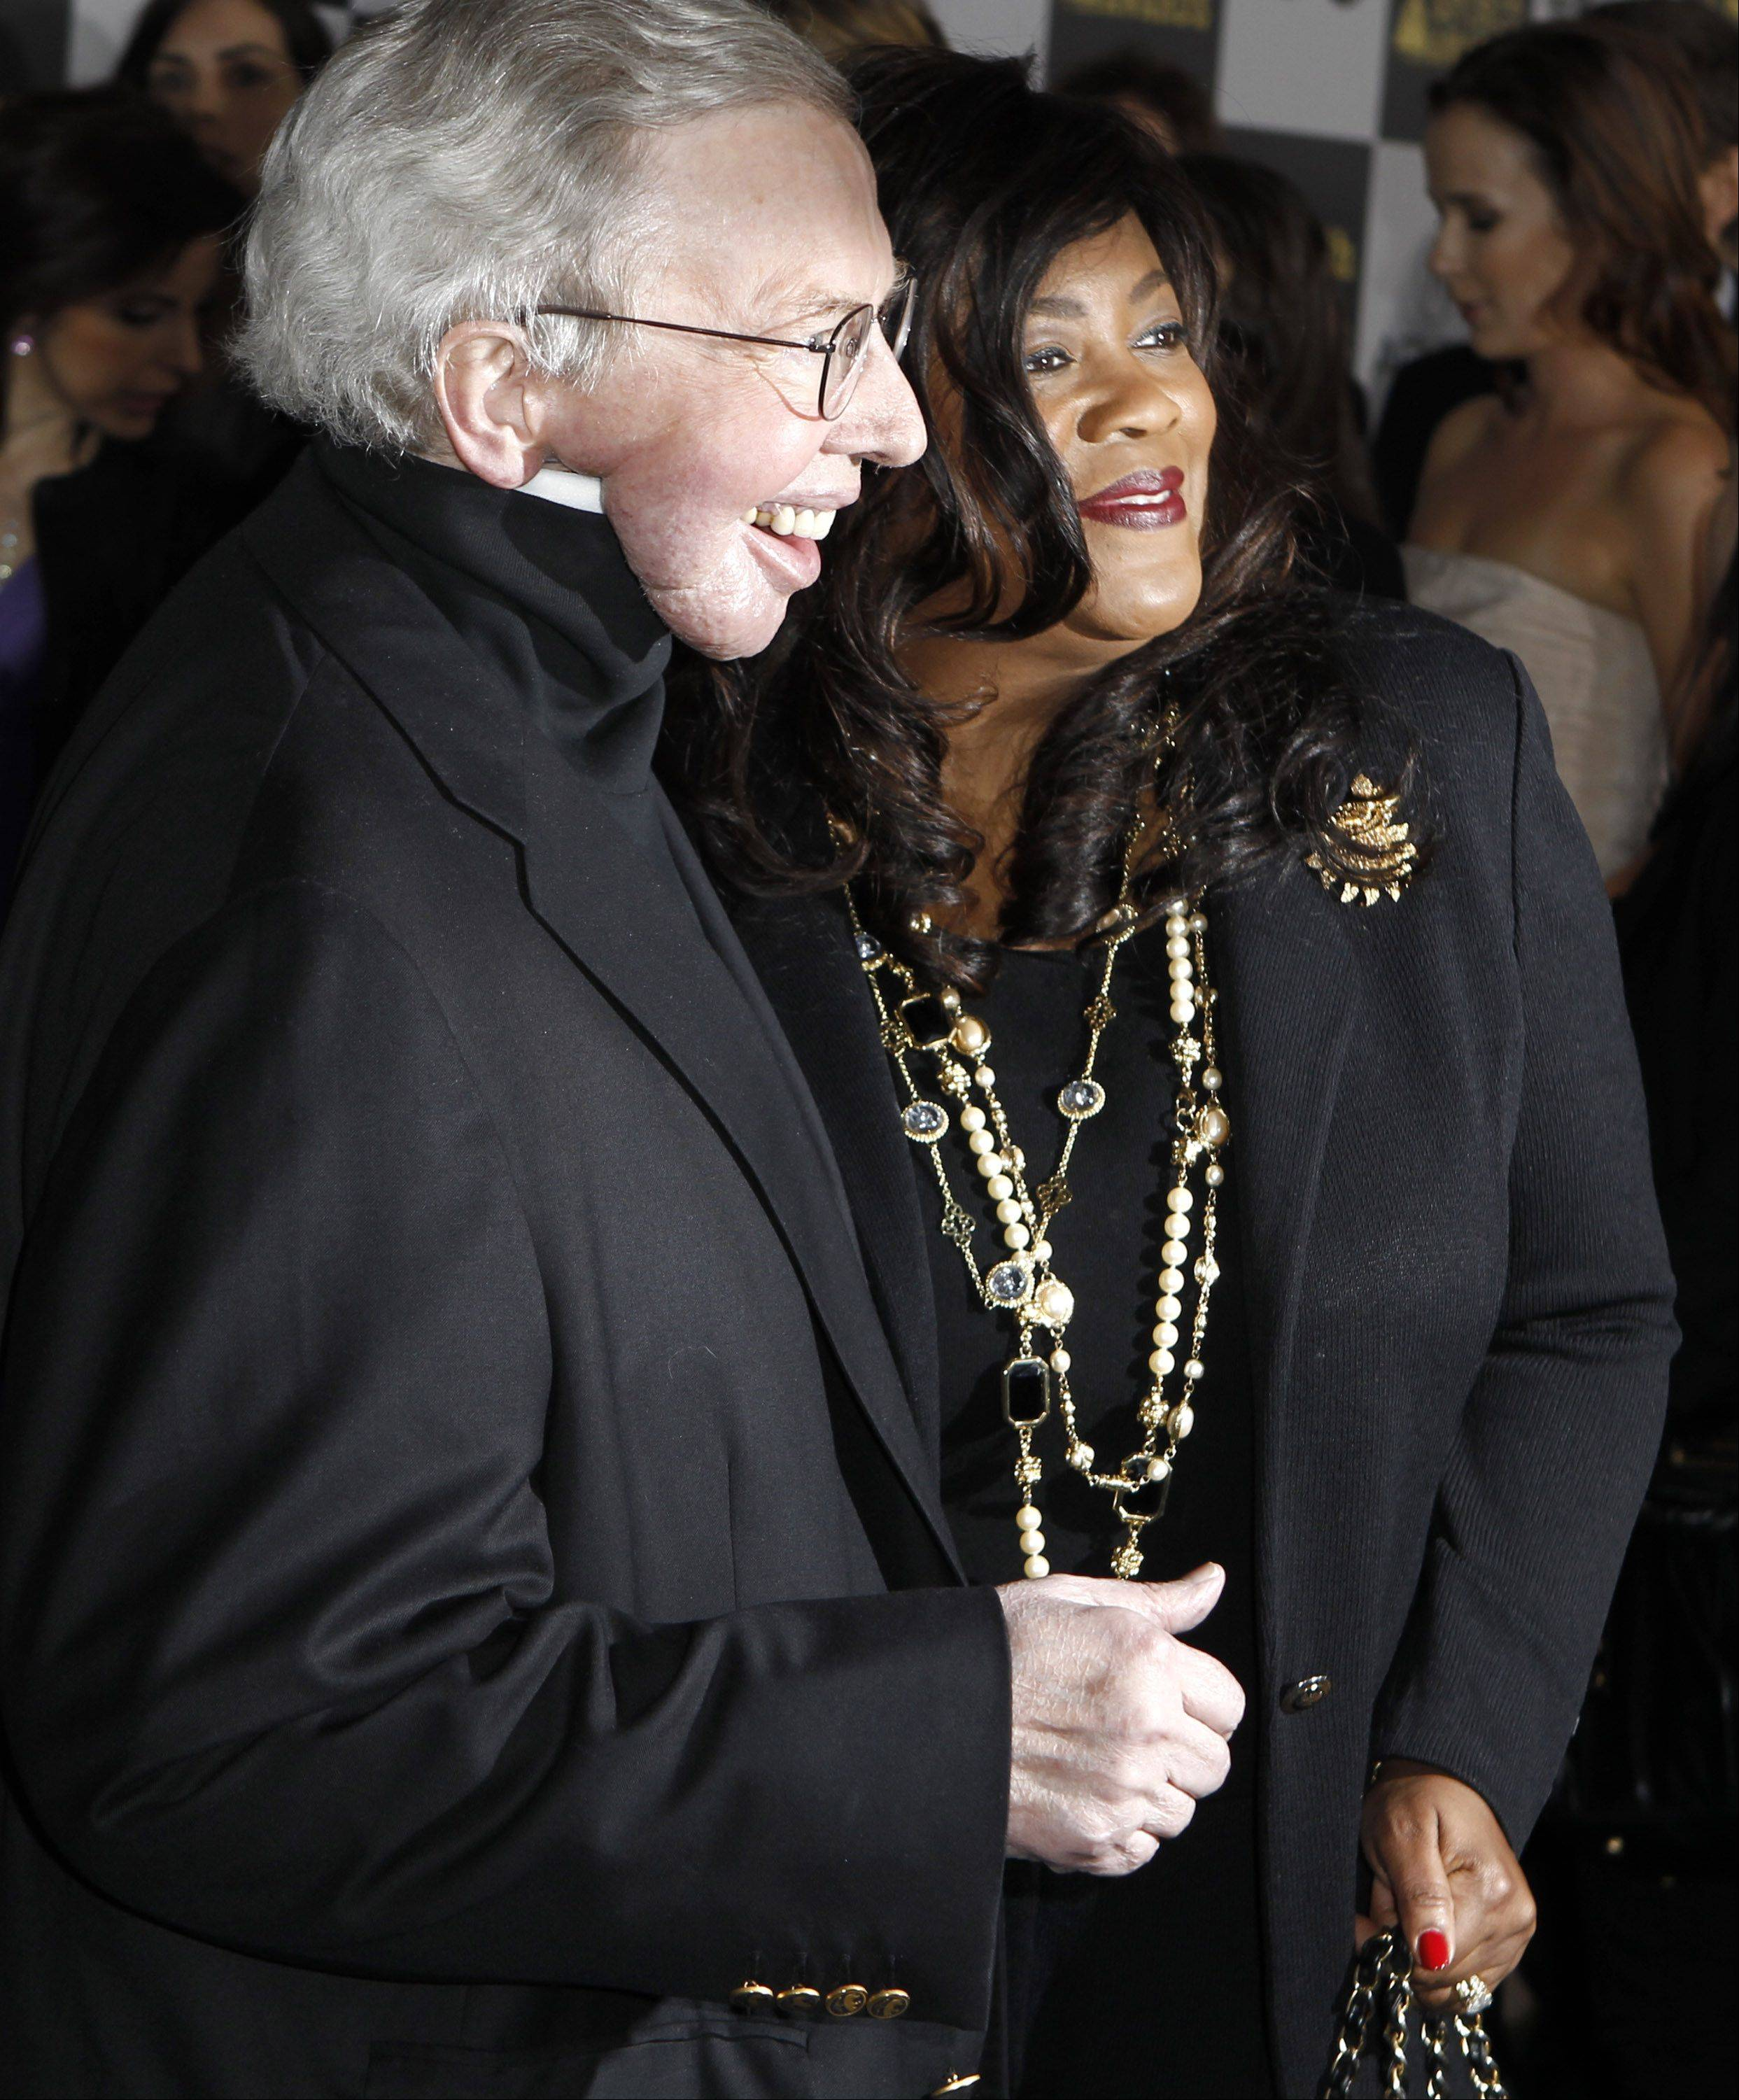 Roger Ebert, left, and wife Chaz Ebert arrive at the Independent Spirit Awards on Friday, March 5, 2010, in Los Angeles.